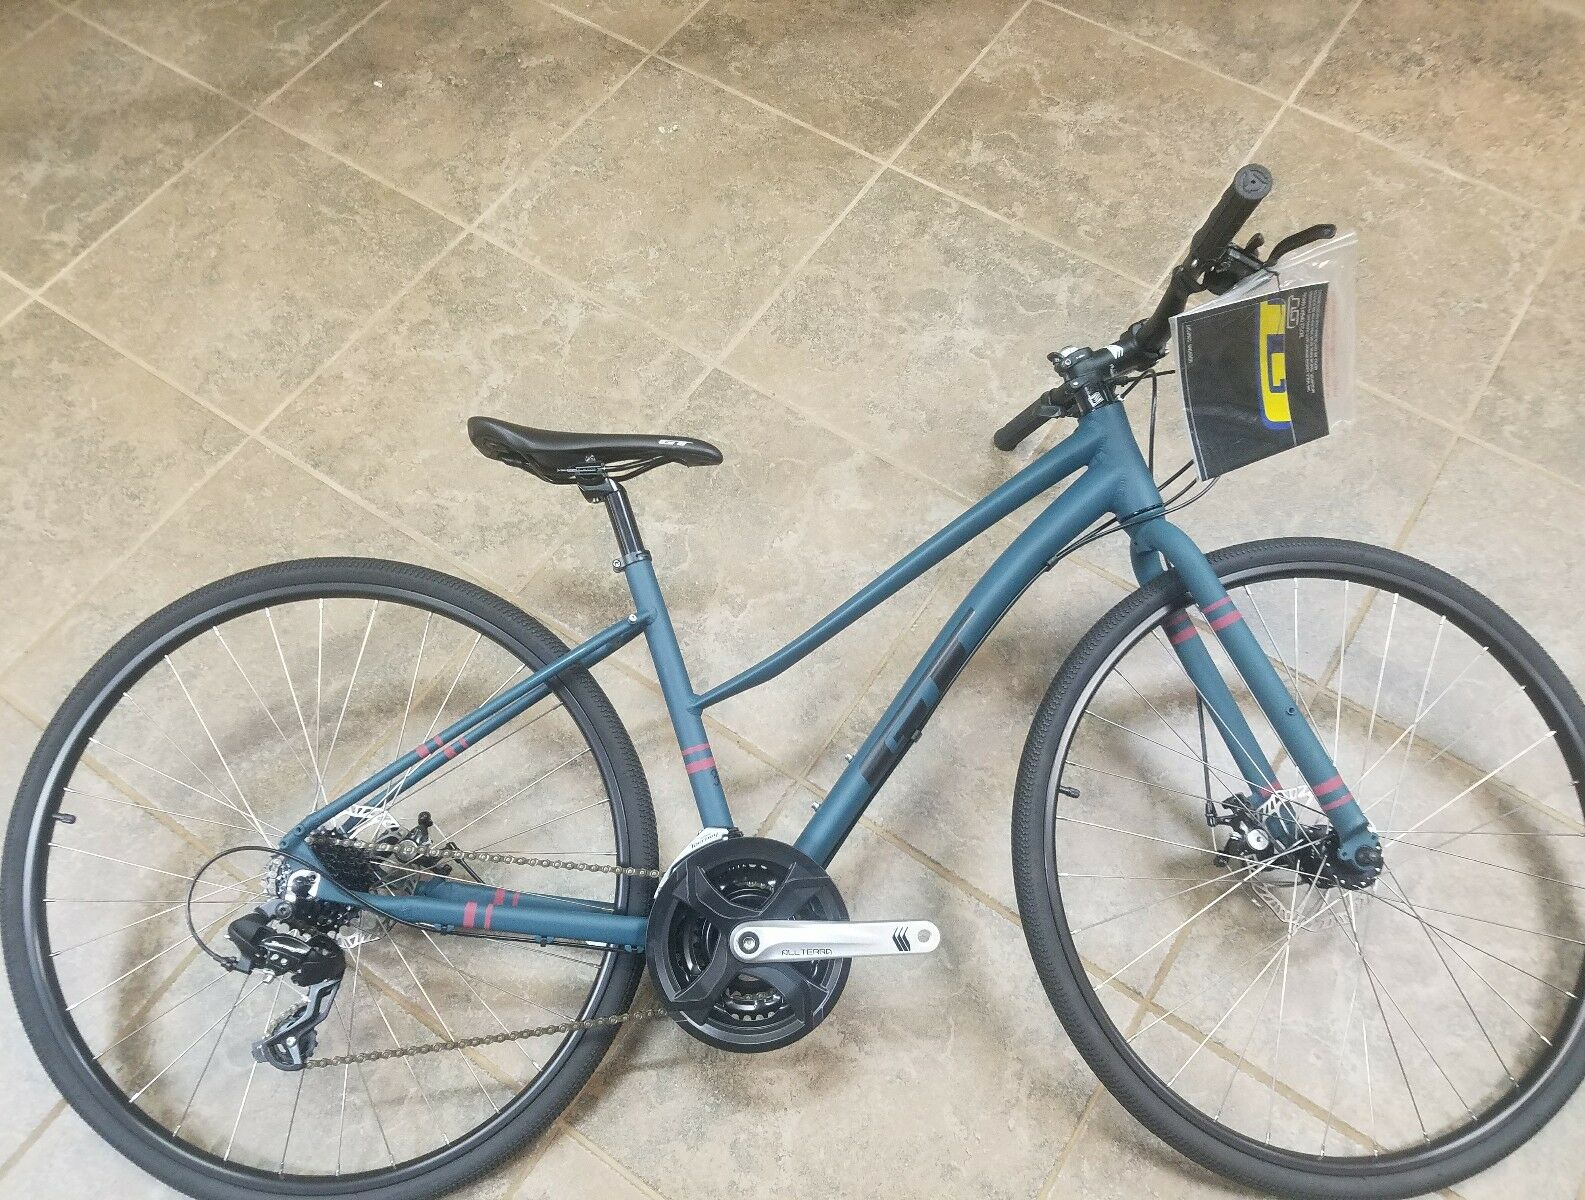 NEW GT TRAFFIC 3.0 COMMUTER ,BIKE PATH, CITY, URBAN ,  DISC BRAKES 21SPD LAST 1